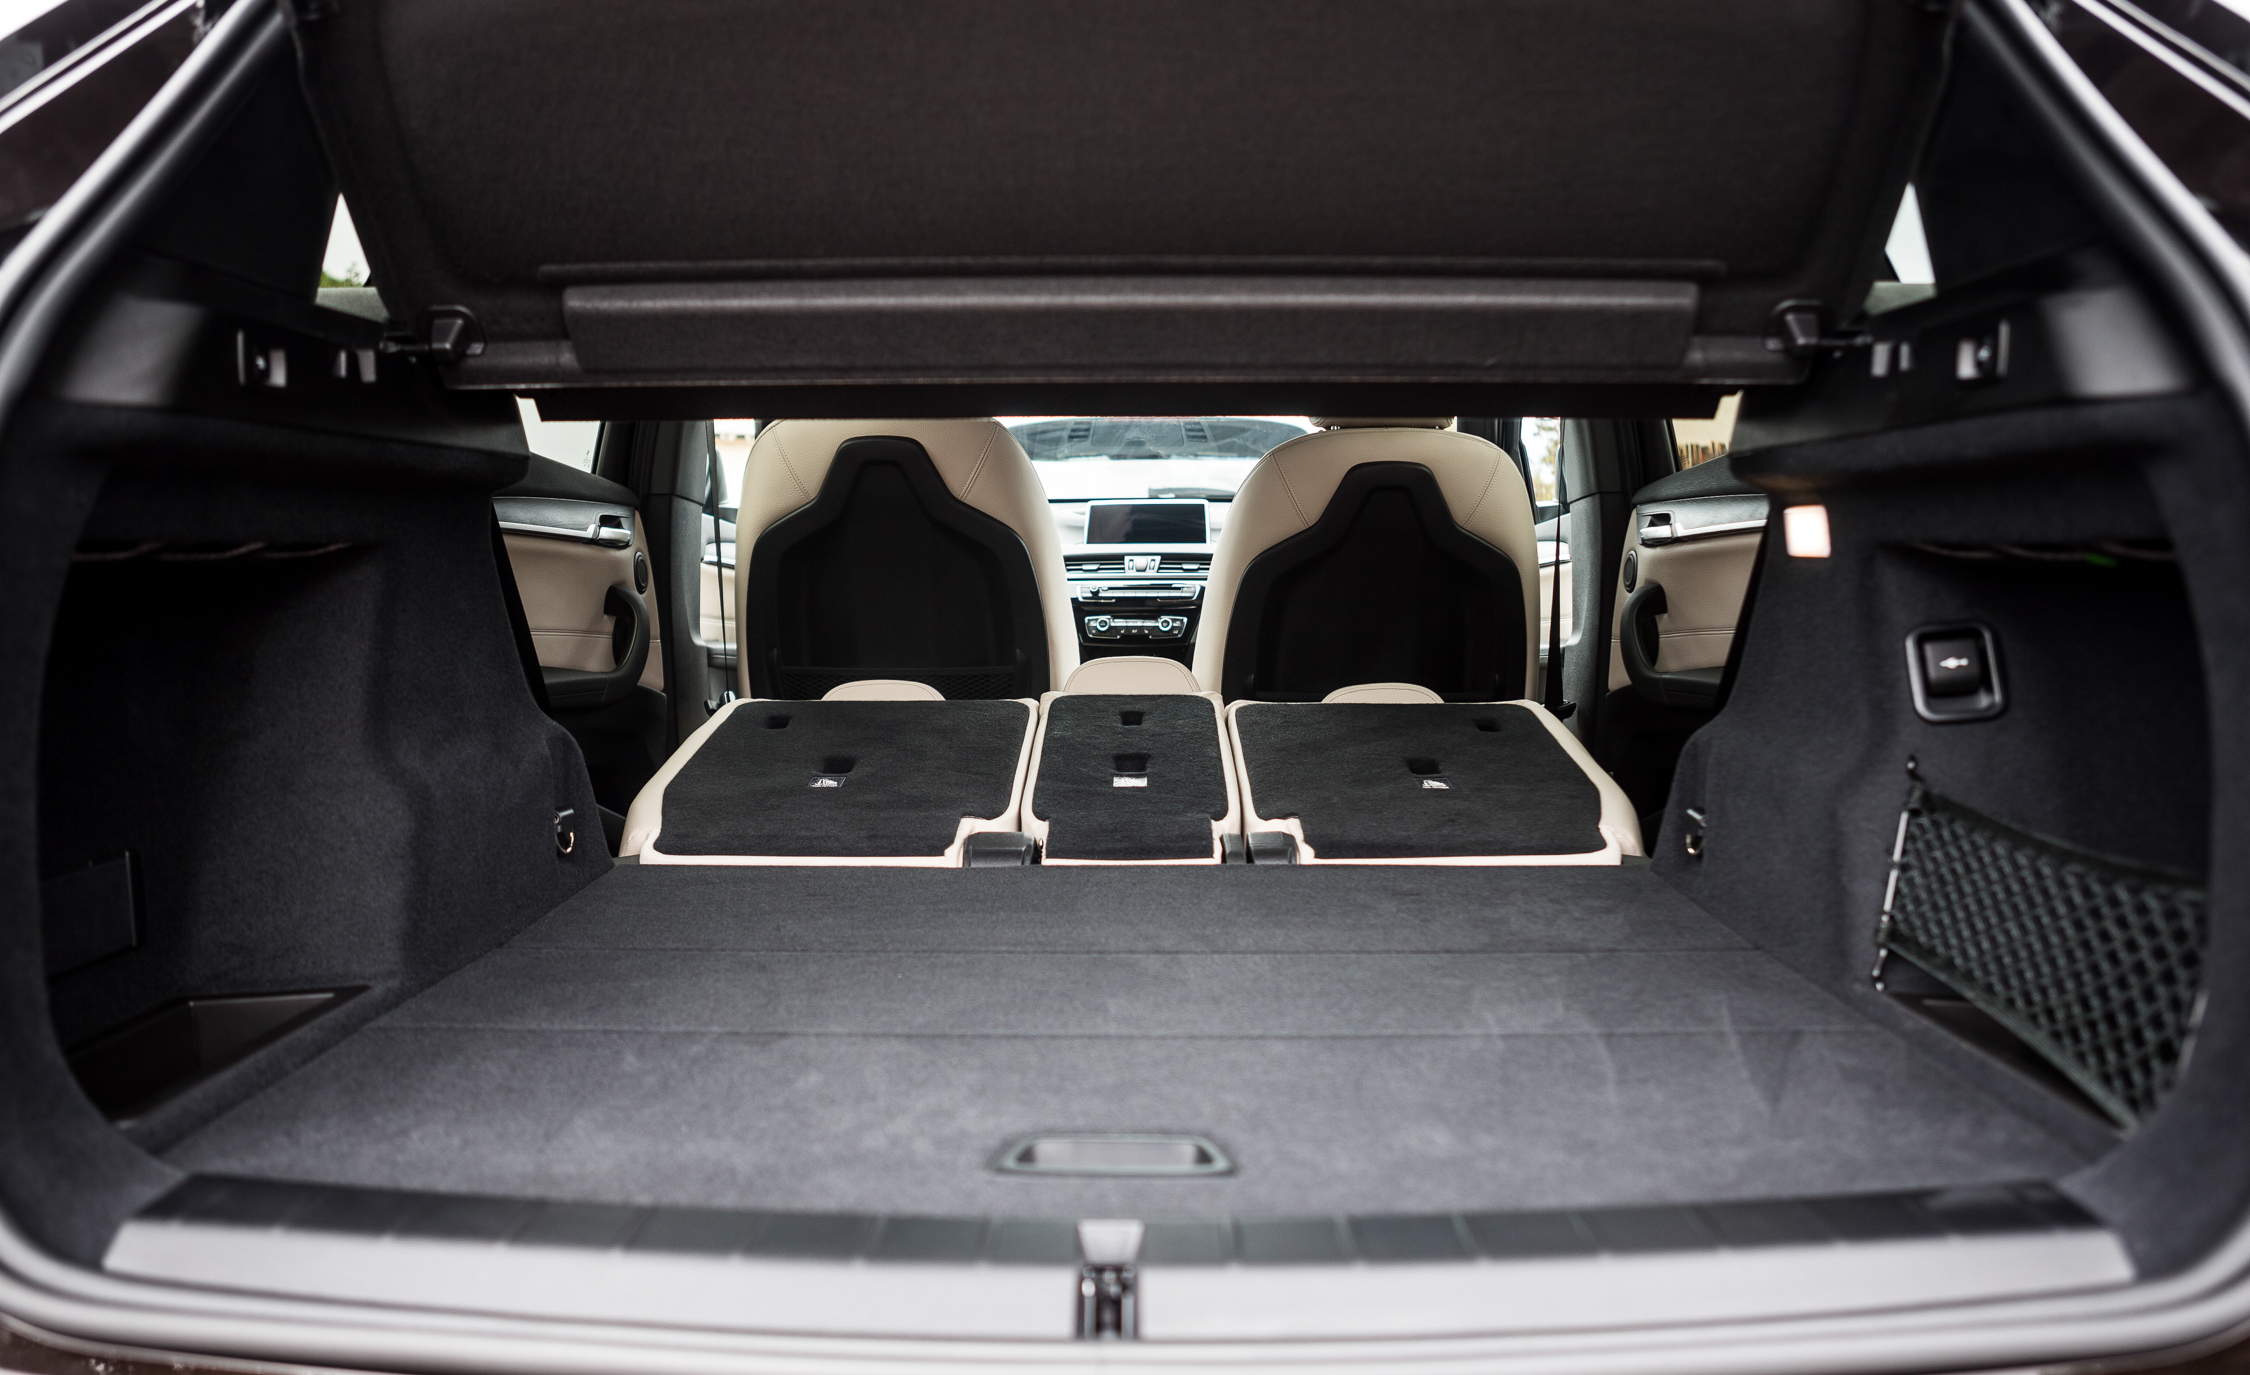 2016 BMW X1 Interior View Cargo Space Seats Folded Down (Photo 24 of 36)